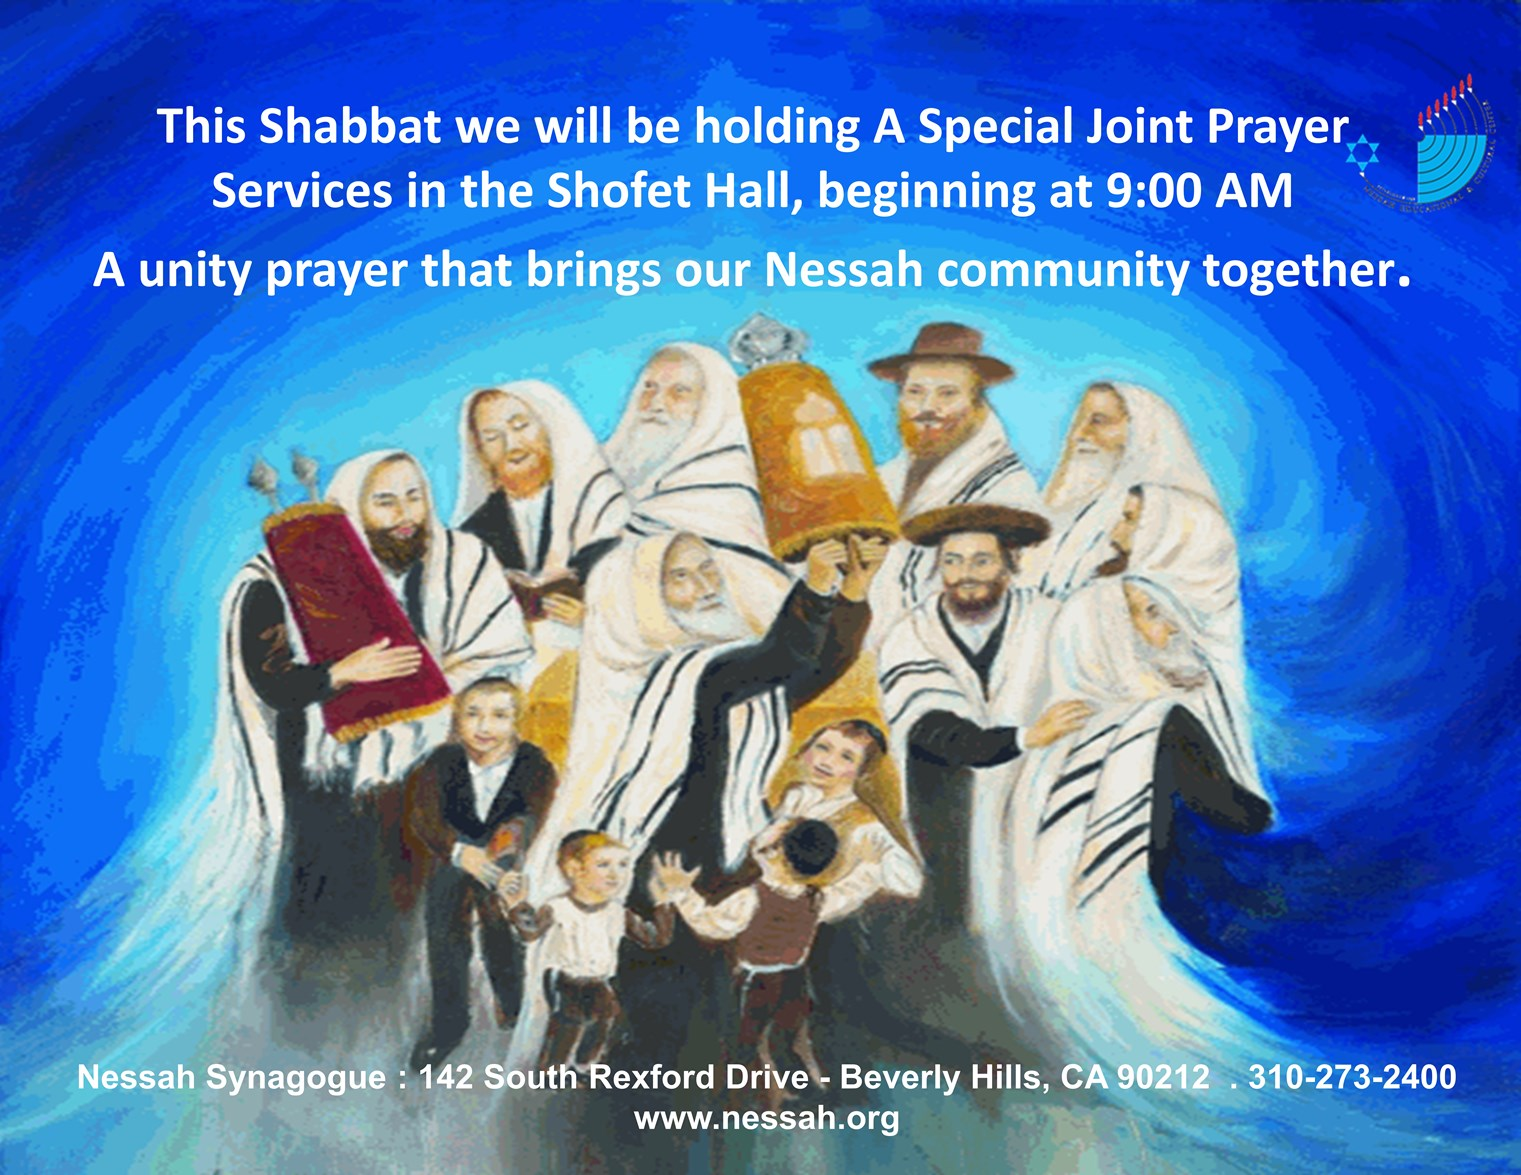 "<a href=""https://images.shulcloud.com/766/uploads/images/jointprayer.jpg"""">